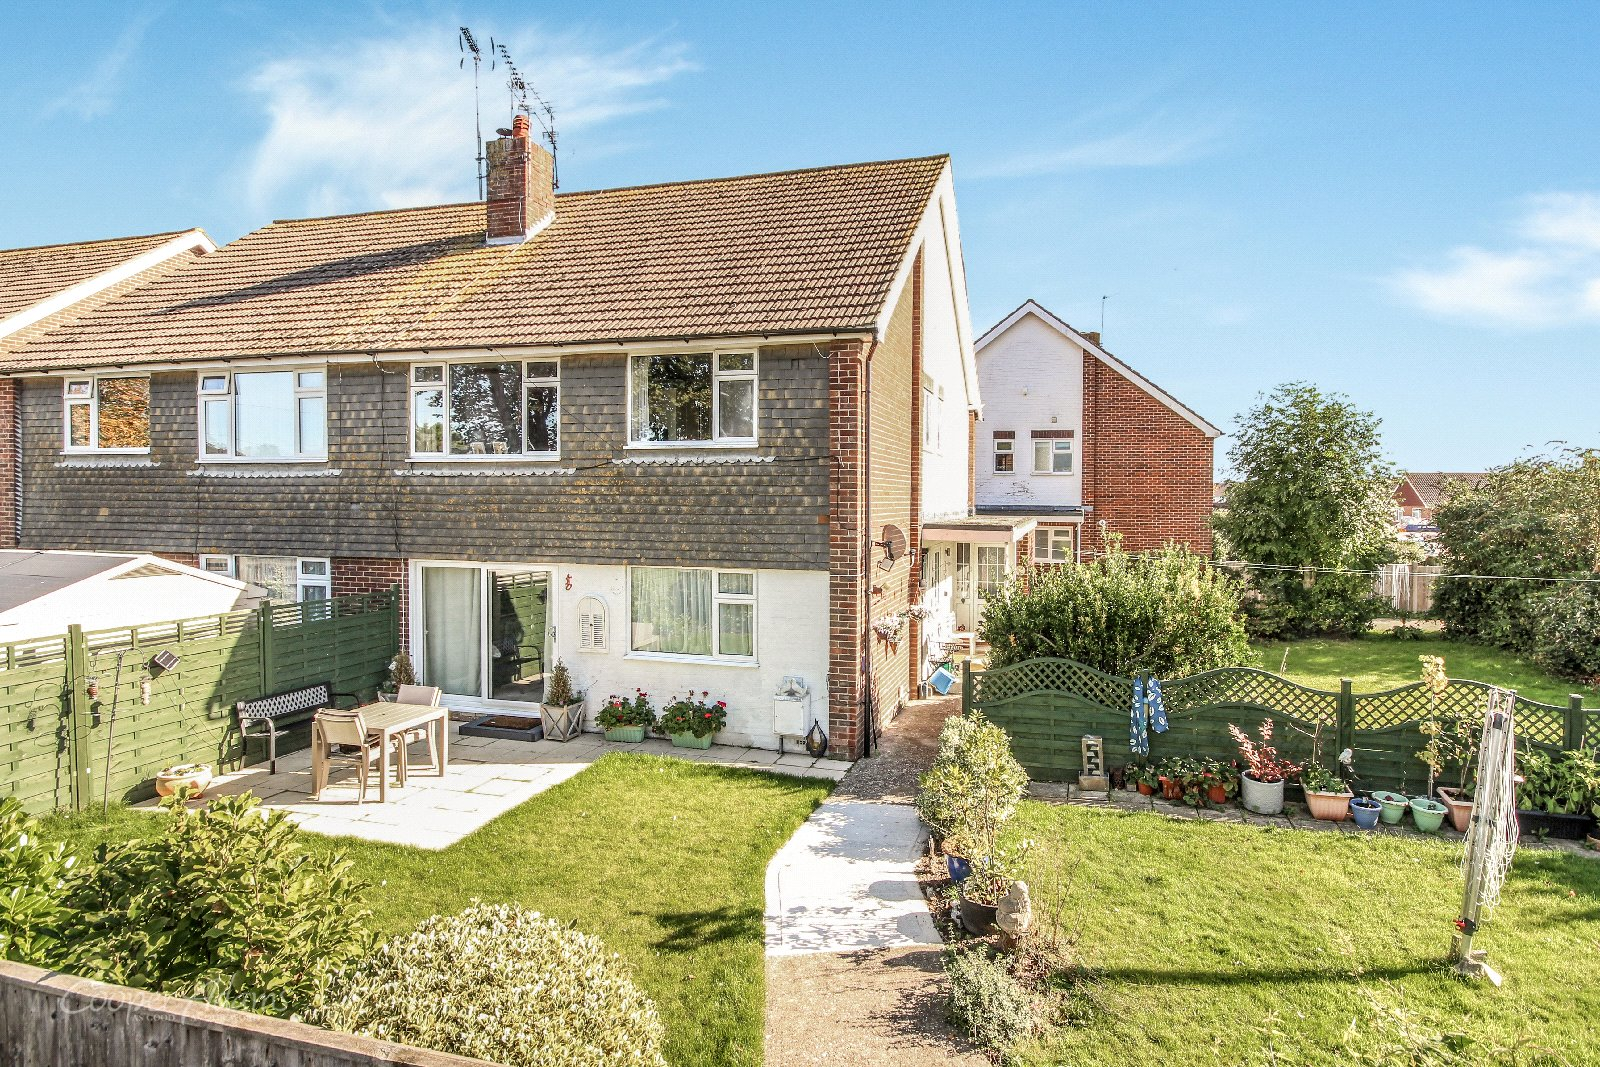 2 bed apartment for sale in Old Manor Road, Rustington, BN16